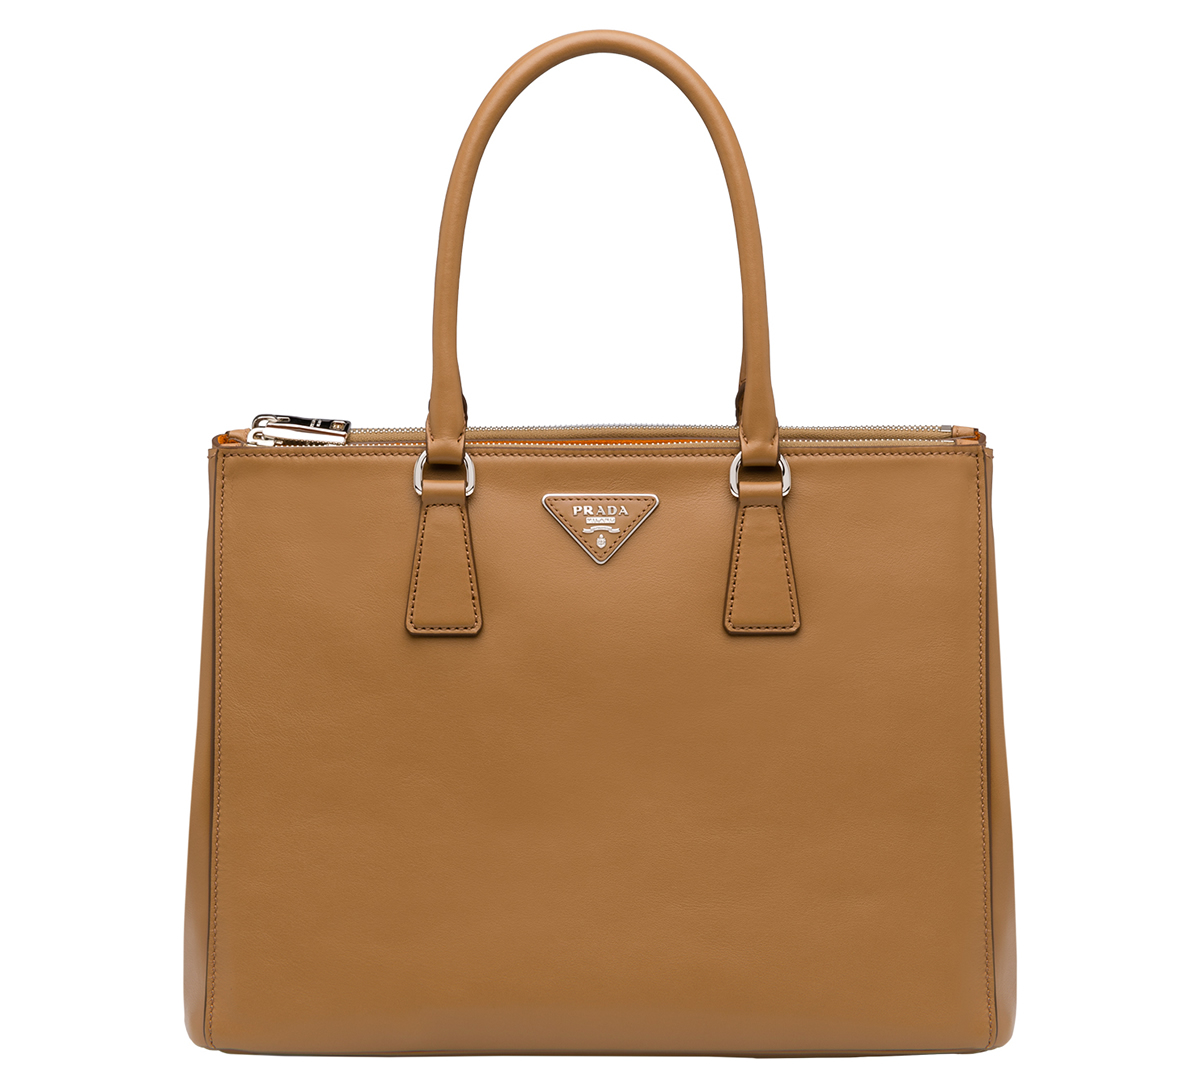 Prada Galleria Bag in Caramel